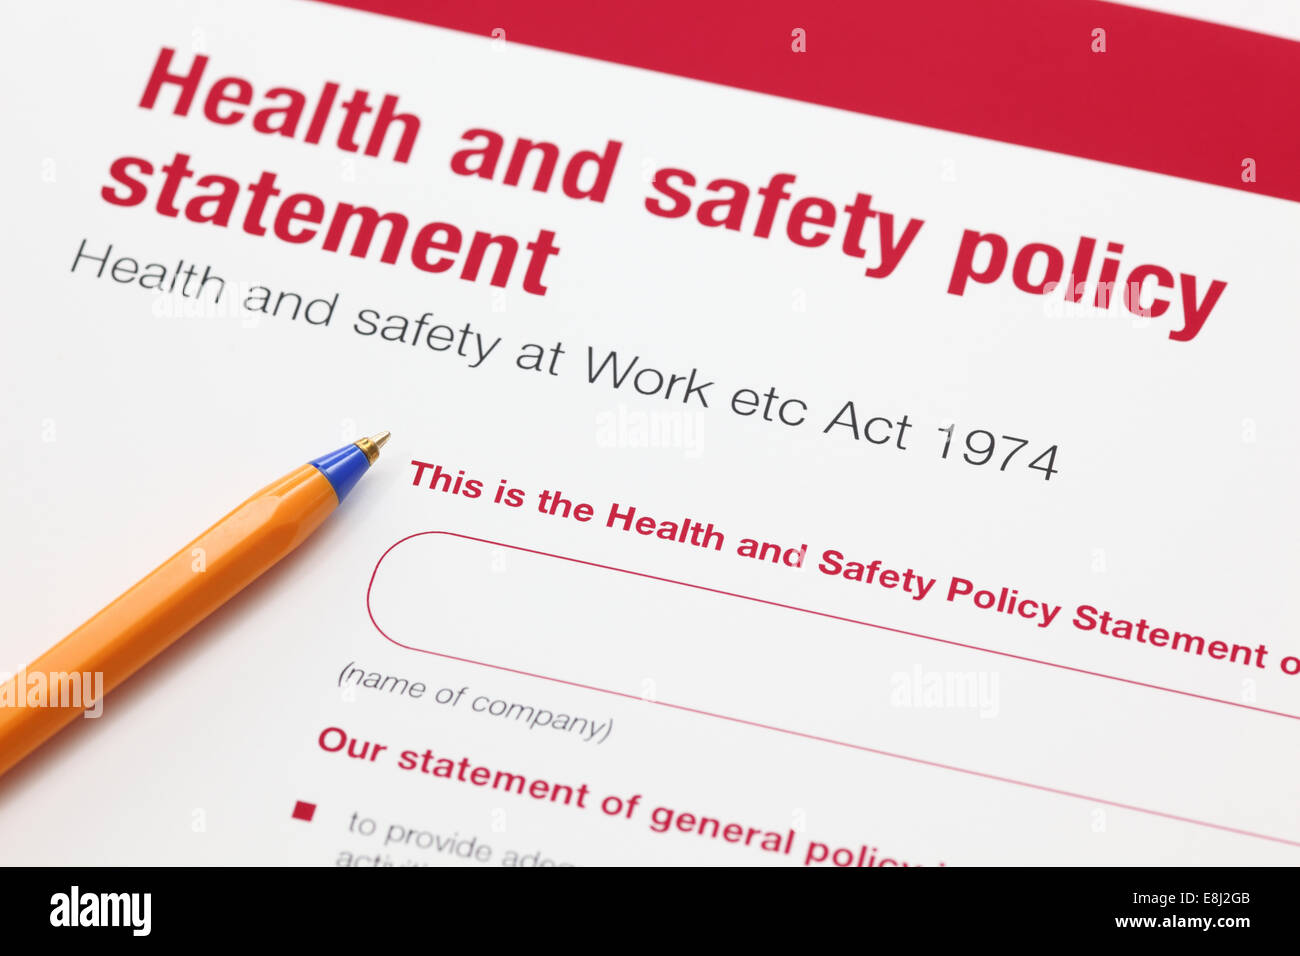 Health and safety policy statement and ballpoint pen. - Stock Image